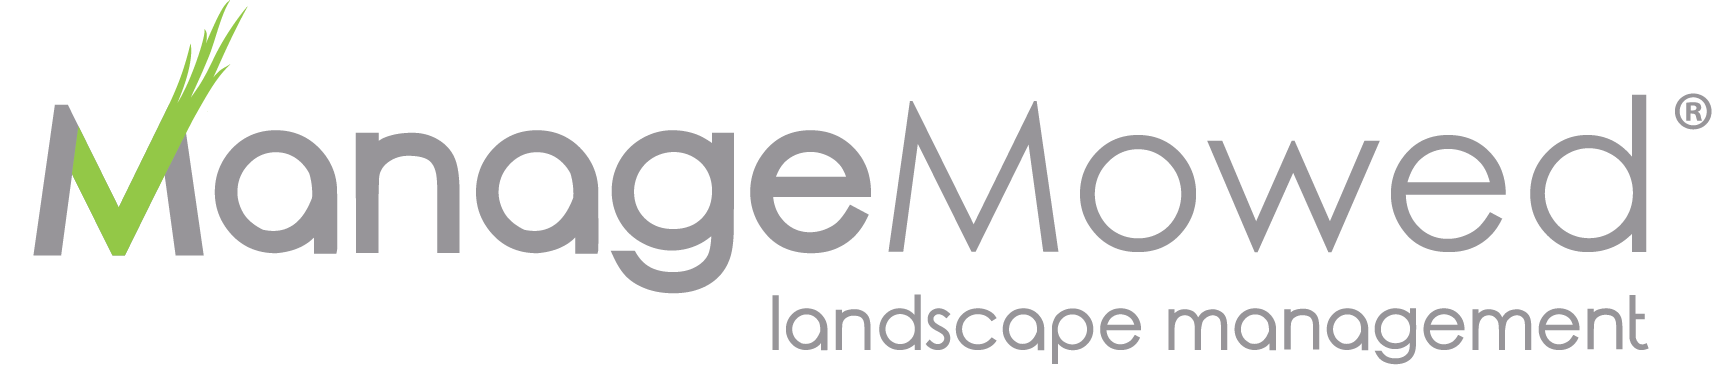 The Smarter Landscaping Solution